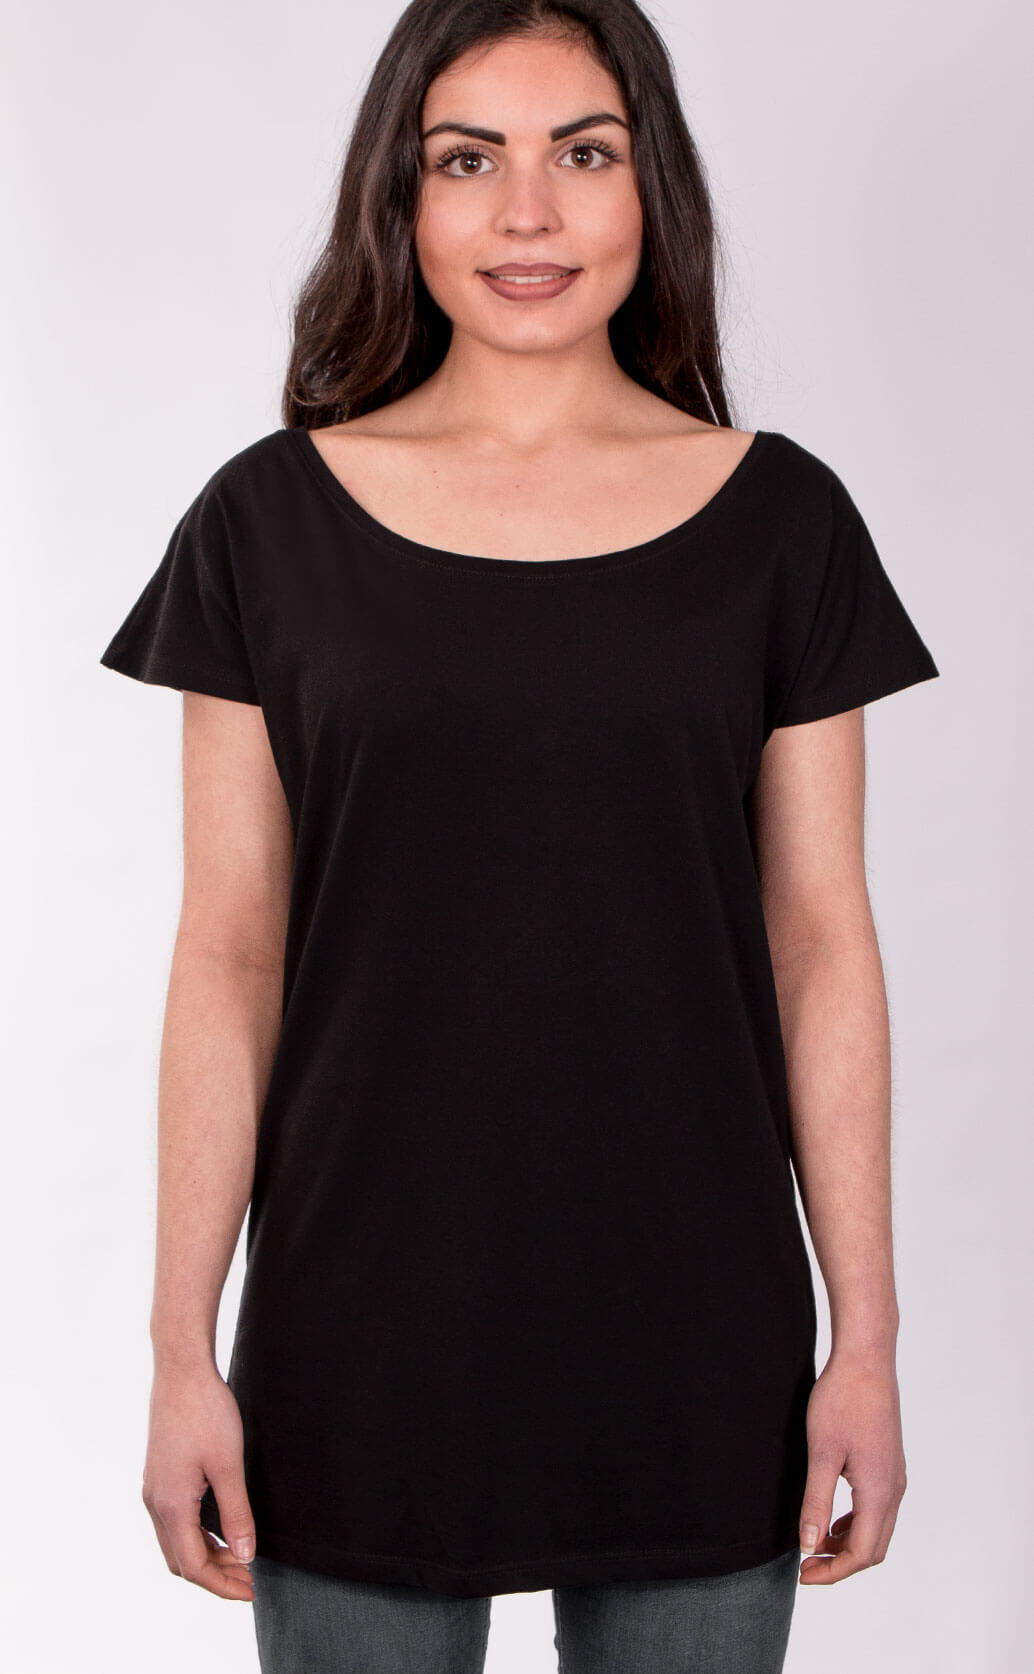 Size guide image for Relaxed T Shirt shirt type. Model is dressed in black